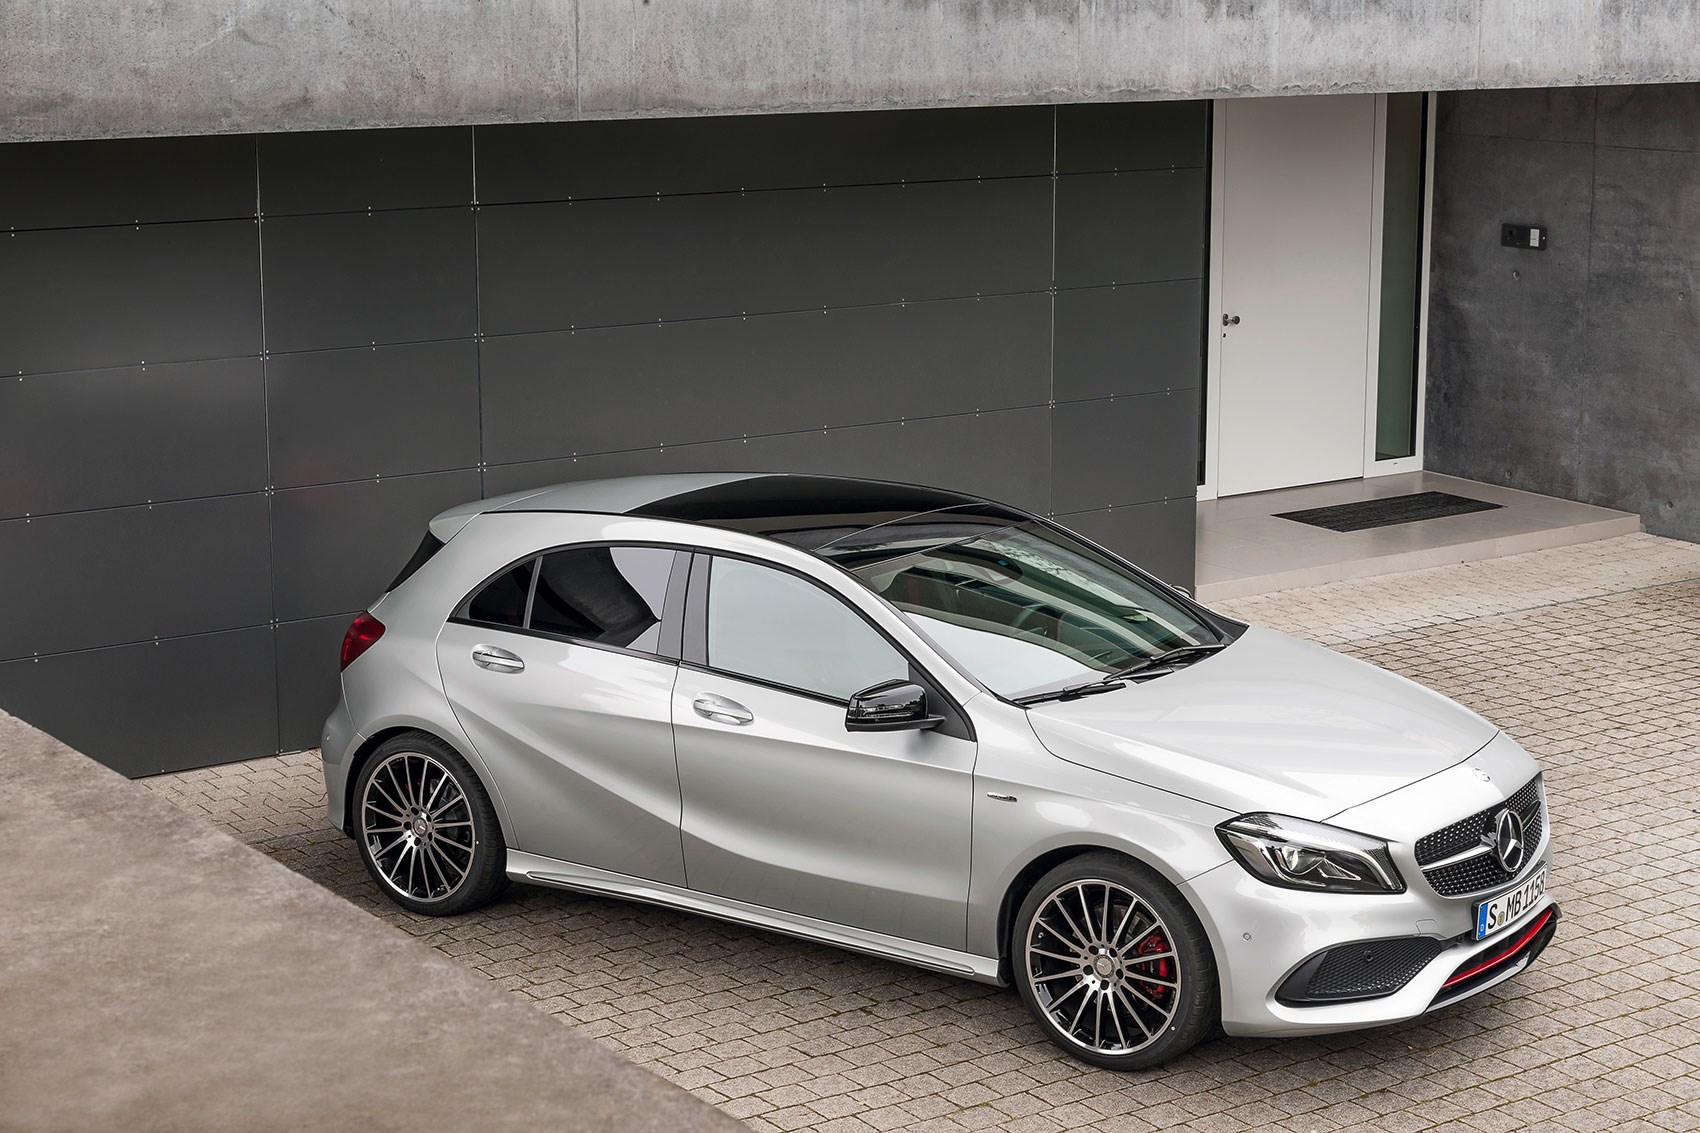 Mercedes A45 AMG muscles up to 381bhp in 2016 Aclass facelift by